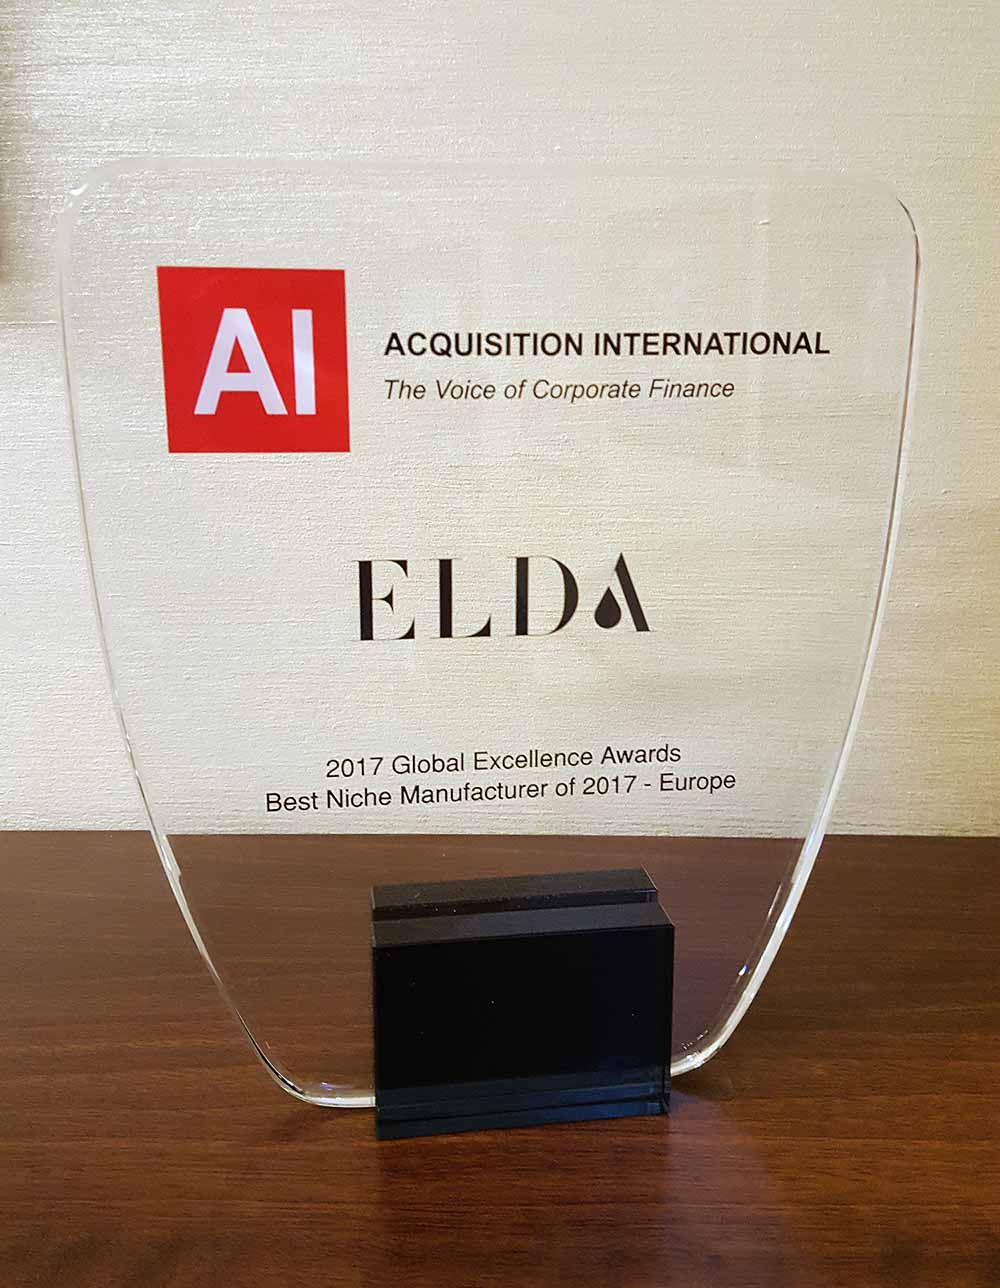 2017 Global Excellence Awards – Best Niche Manufacturer of 2017